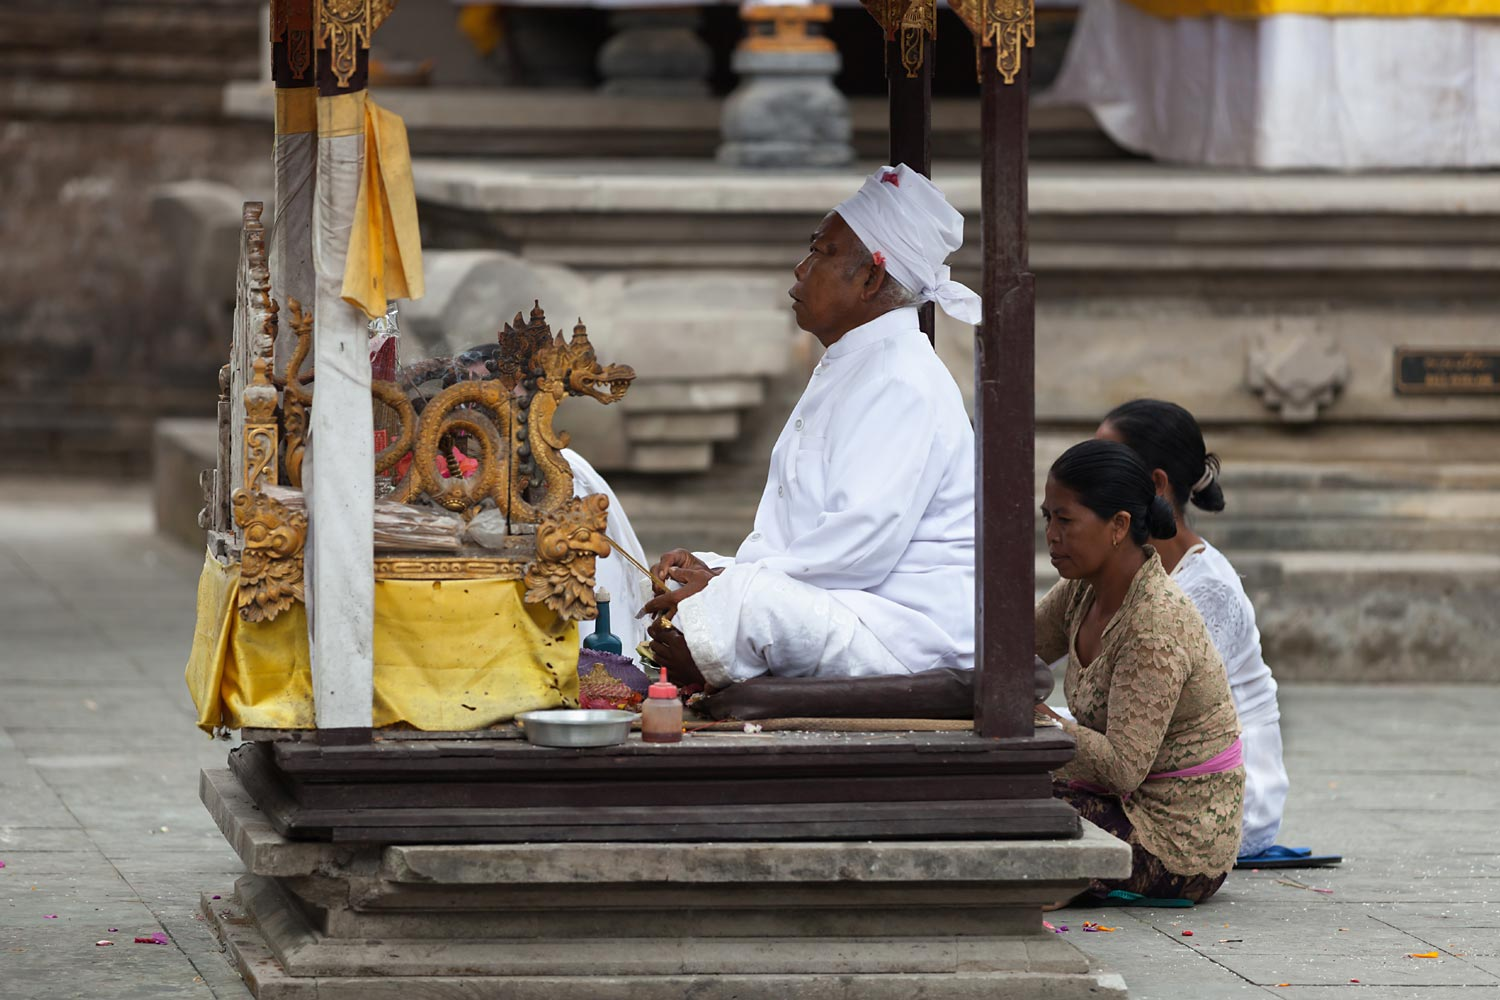 A priest tended by assistants in a temple ceremony | Bali